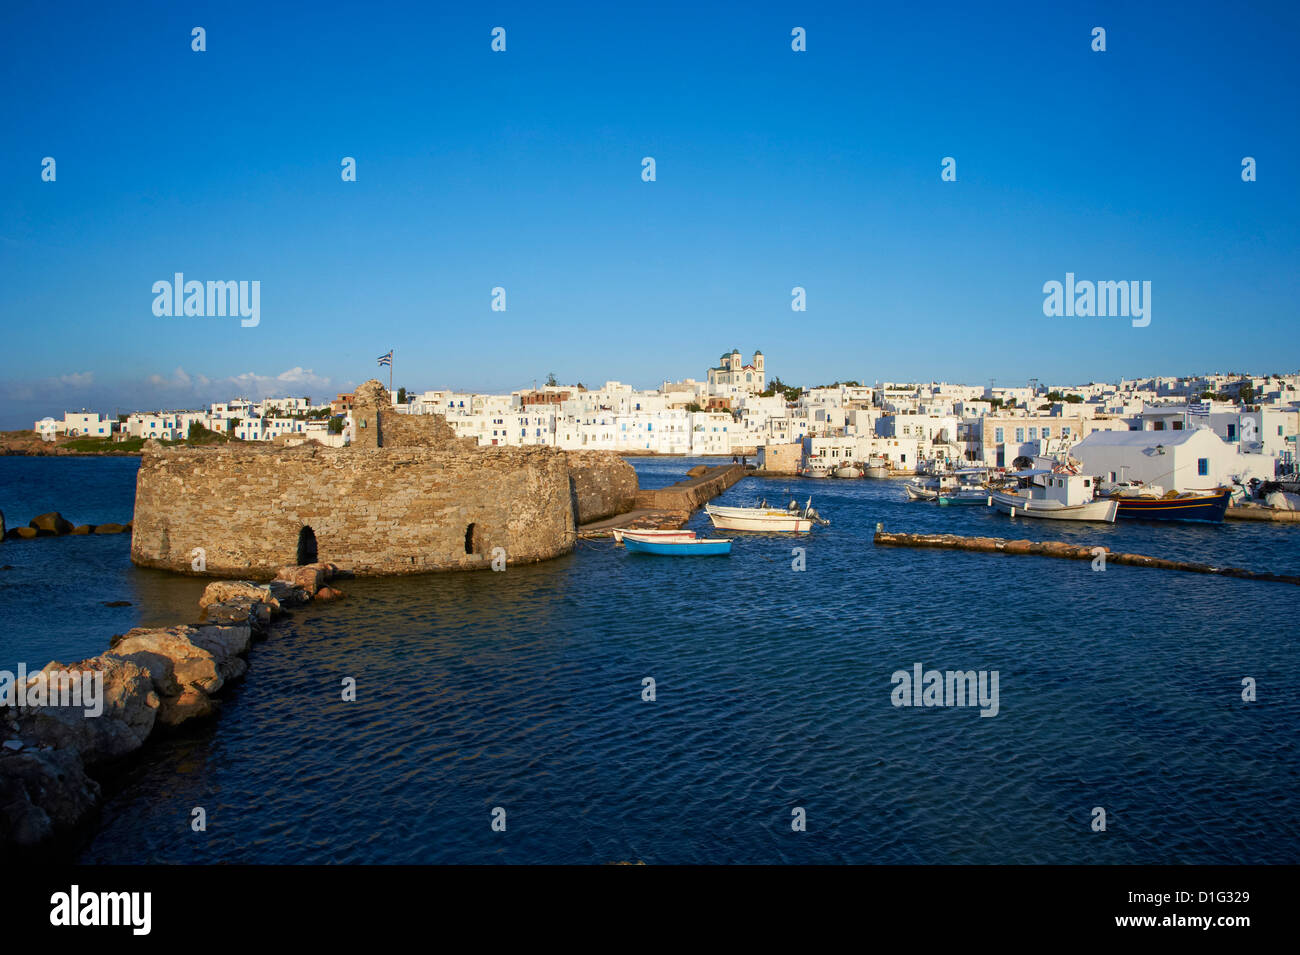 Venetian fortress and port, Naoussa, Paros, Cyclades, Aegean, Greek Islands, Greece, Europe - Stock Image